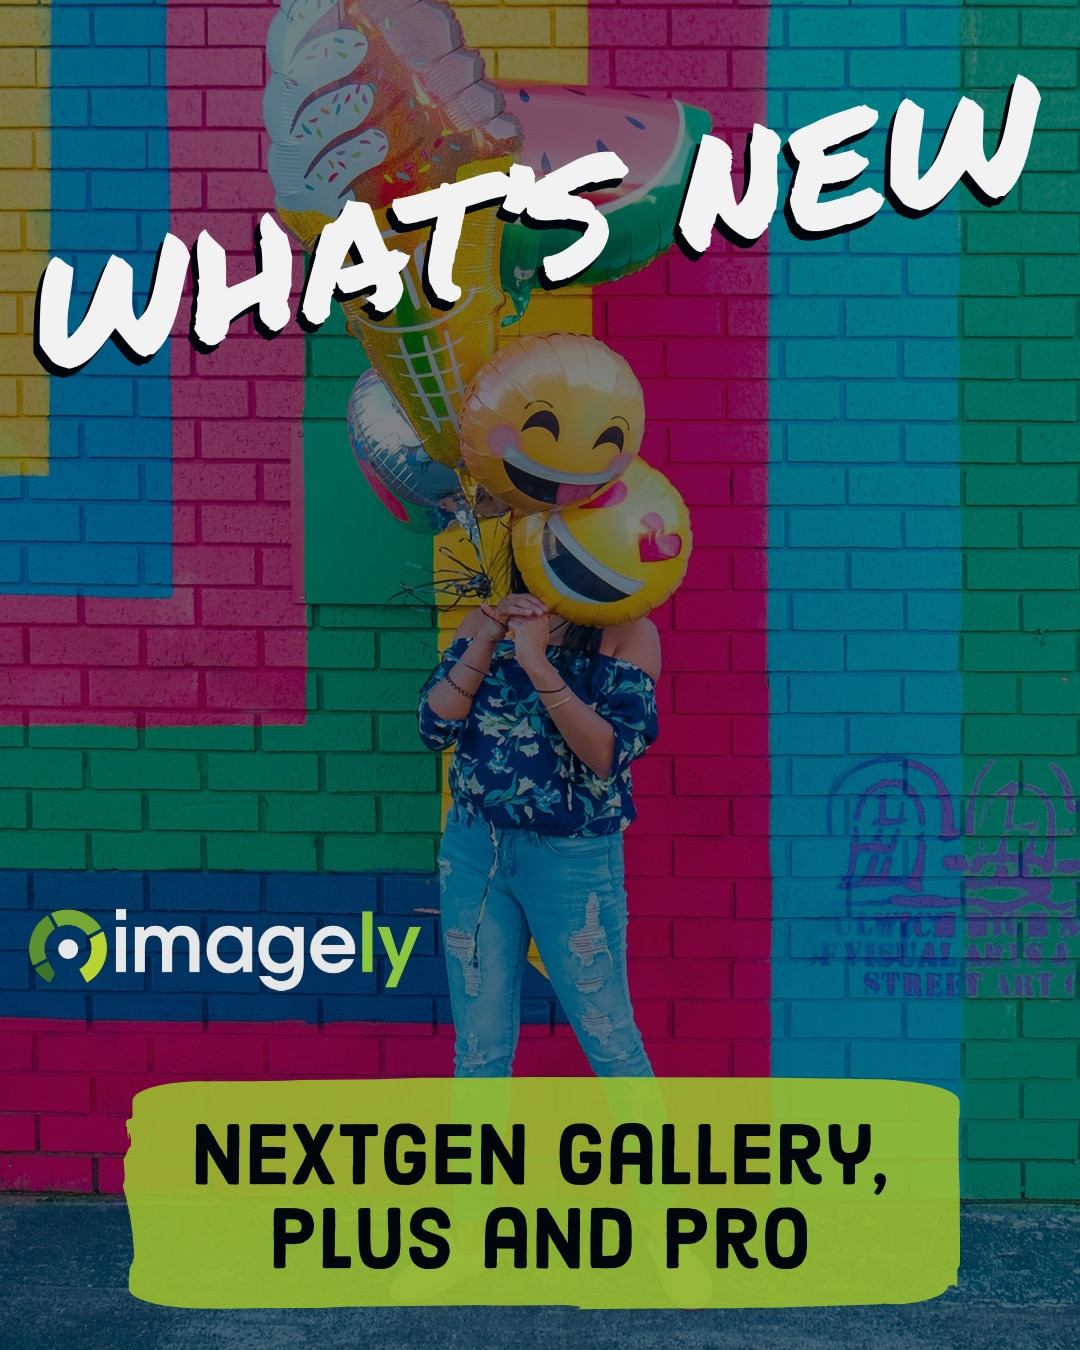 whats new with nextgen gallery plus pro